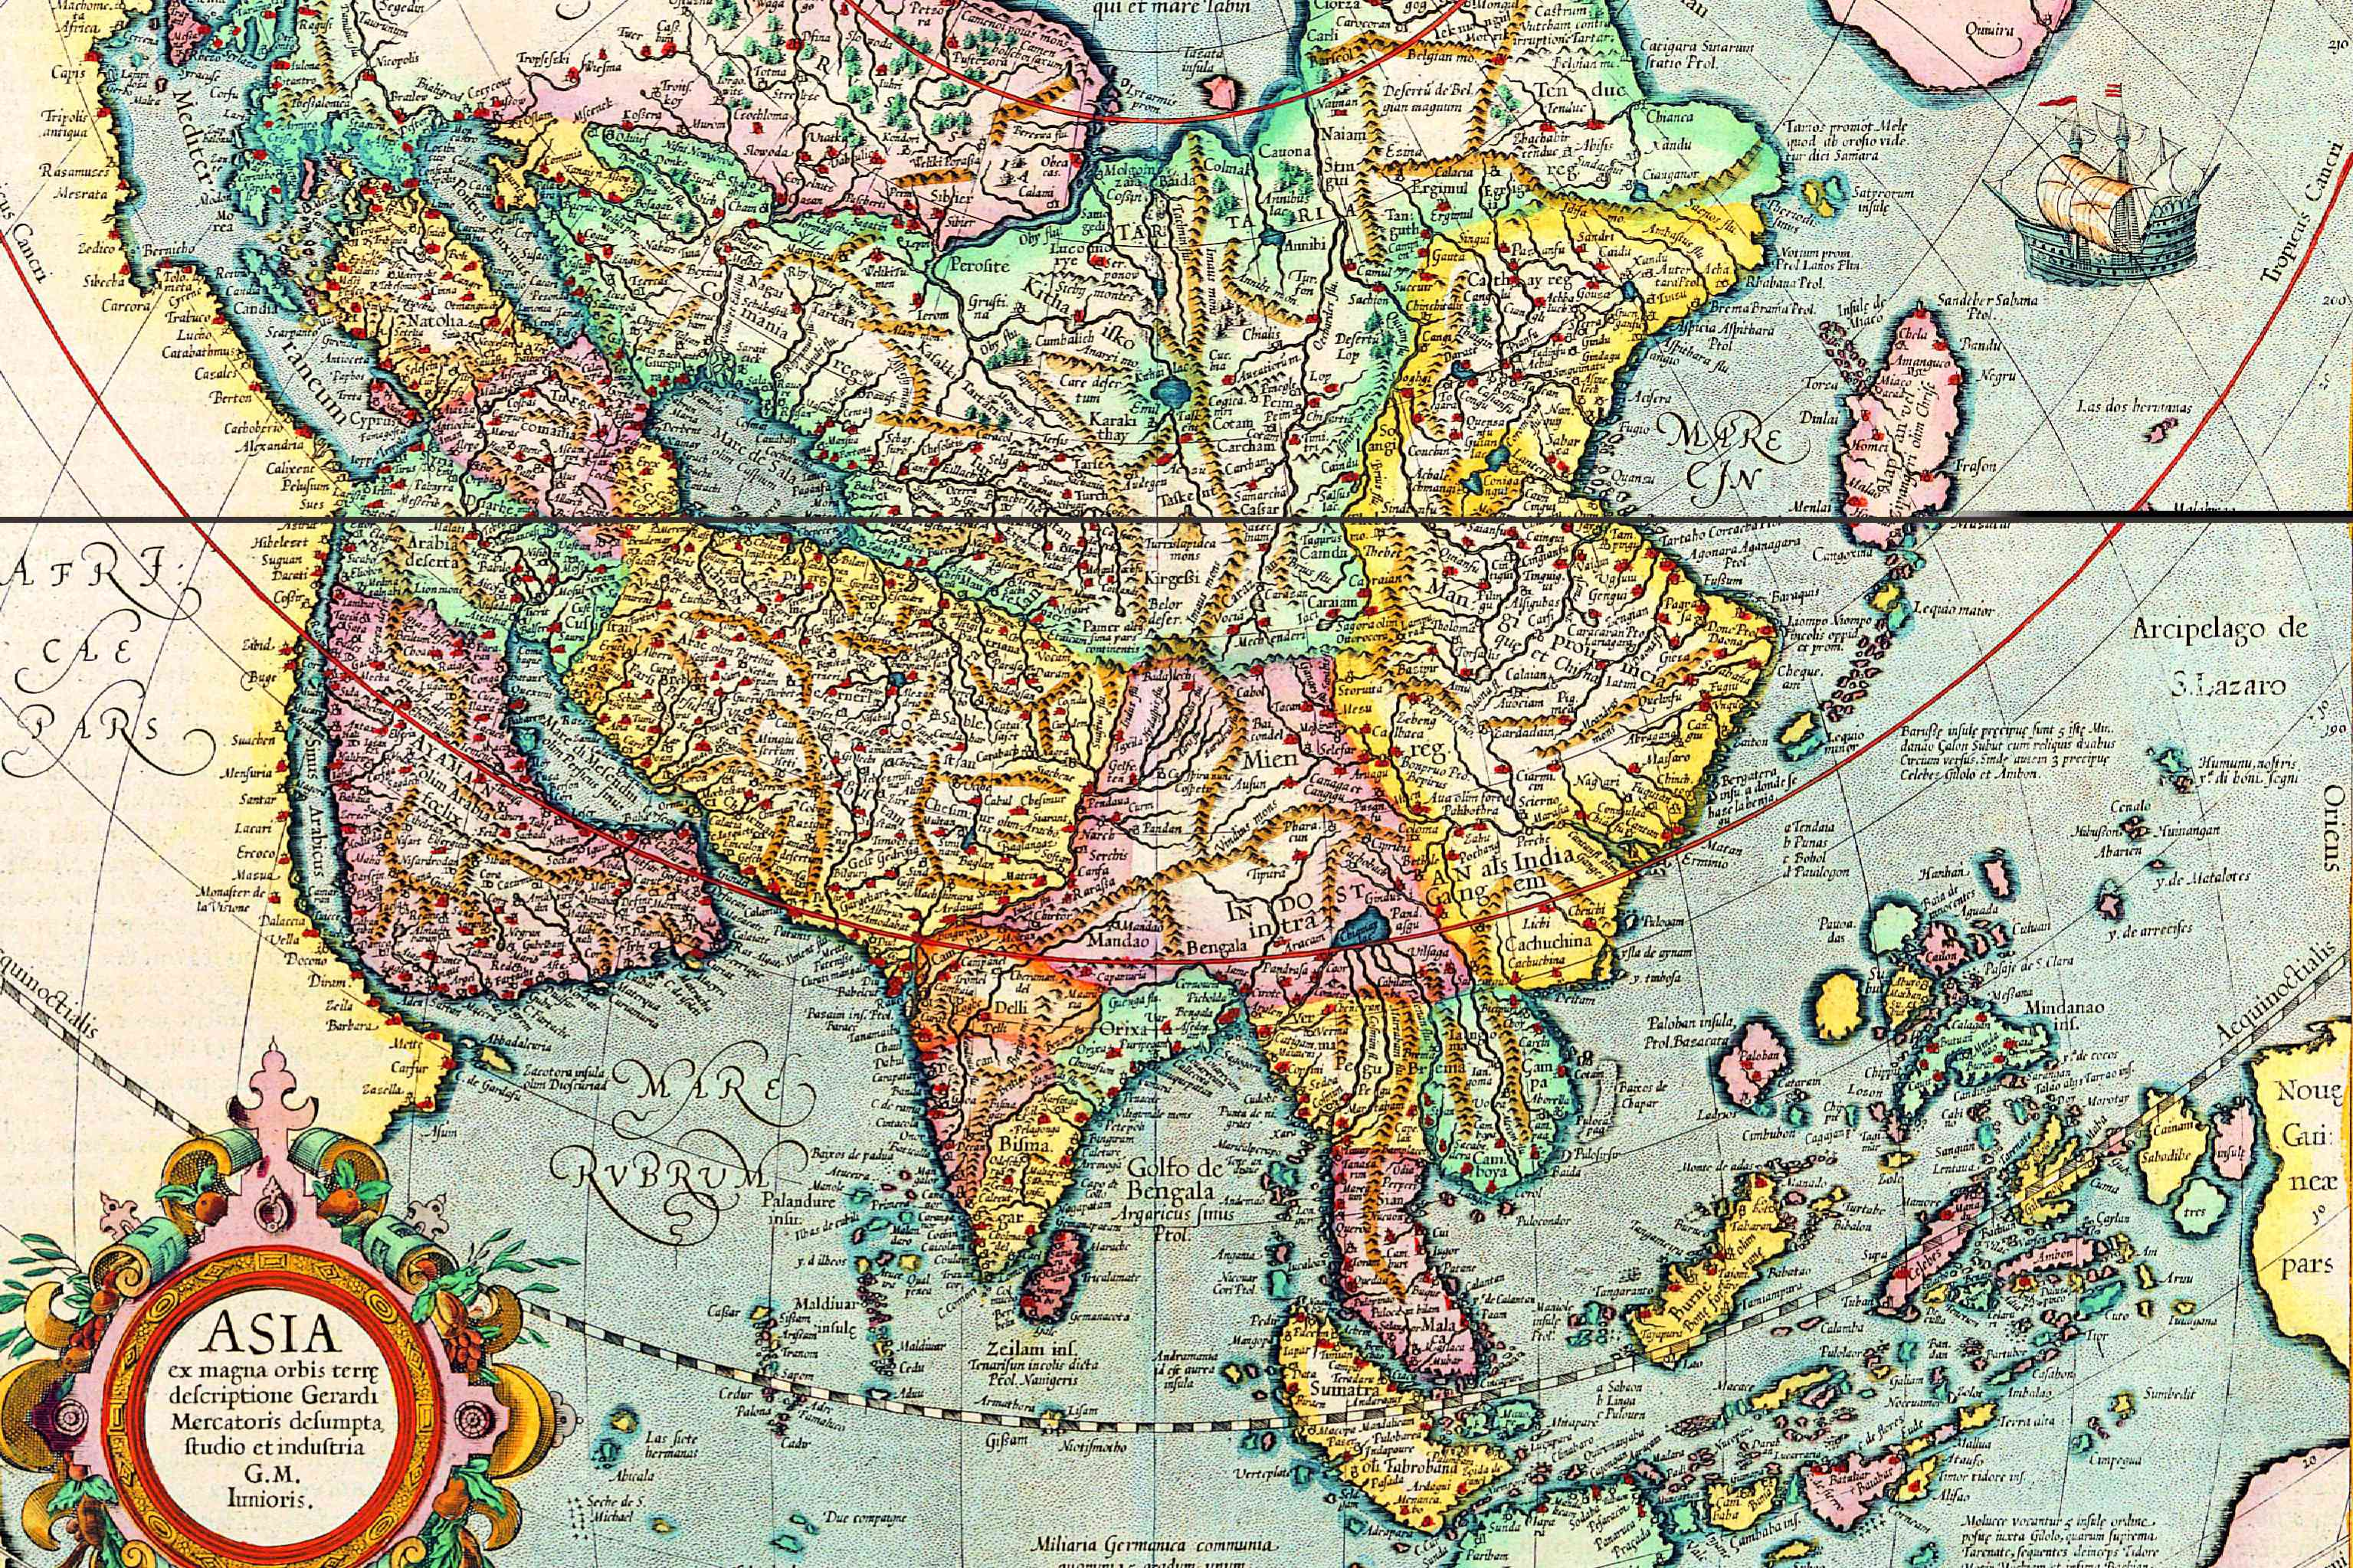 An ancient map of Asia by Flemish cartographer Jodocus Hondius